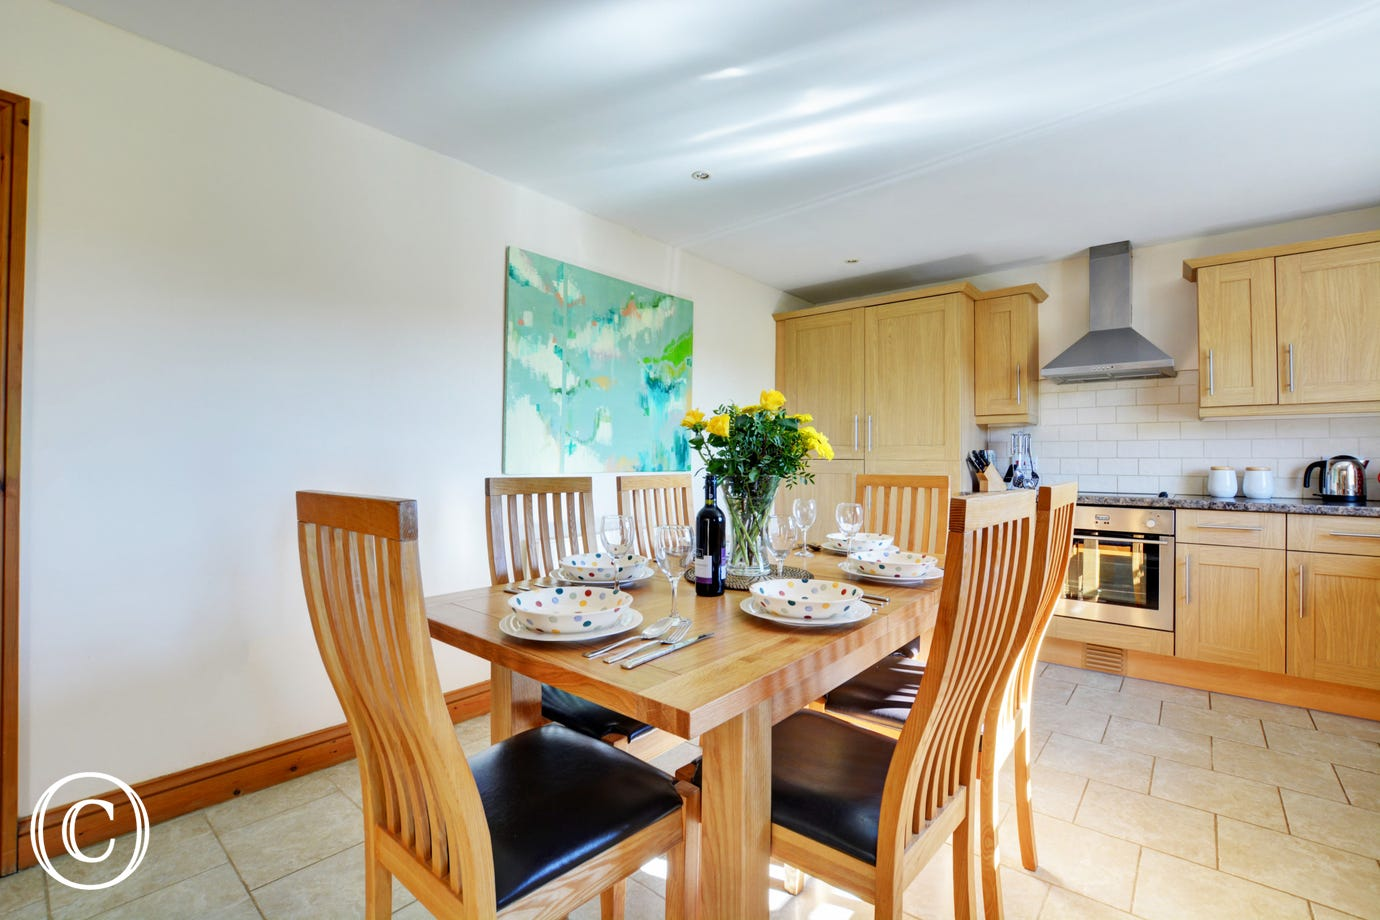 Lovely kitchen with dining area